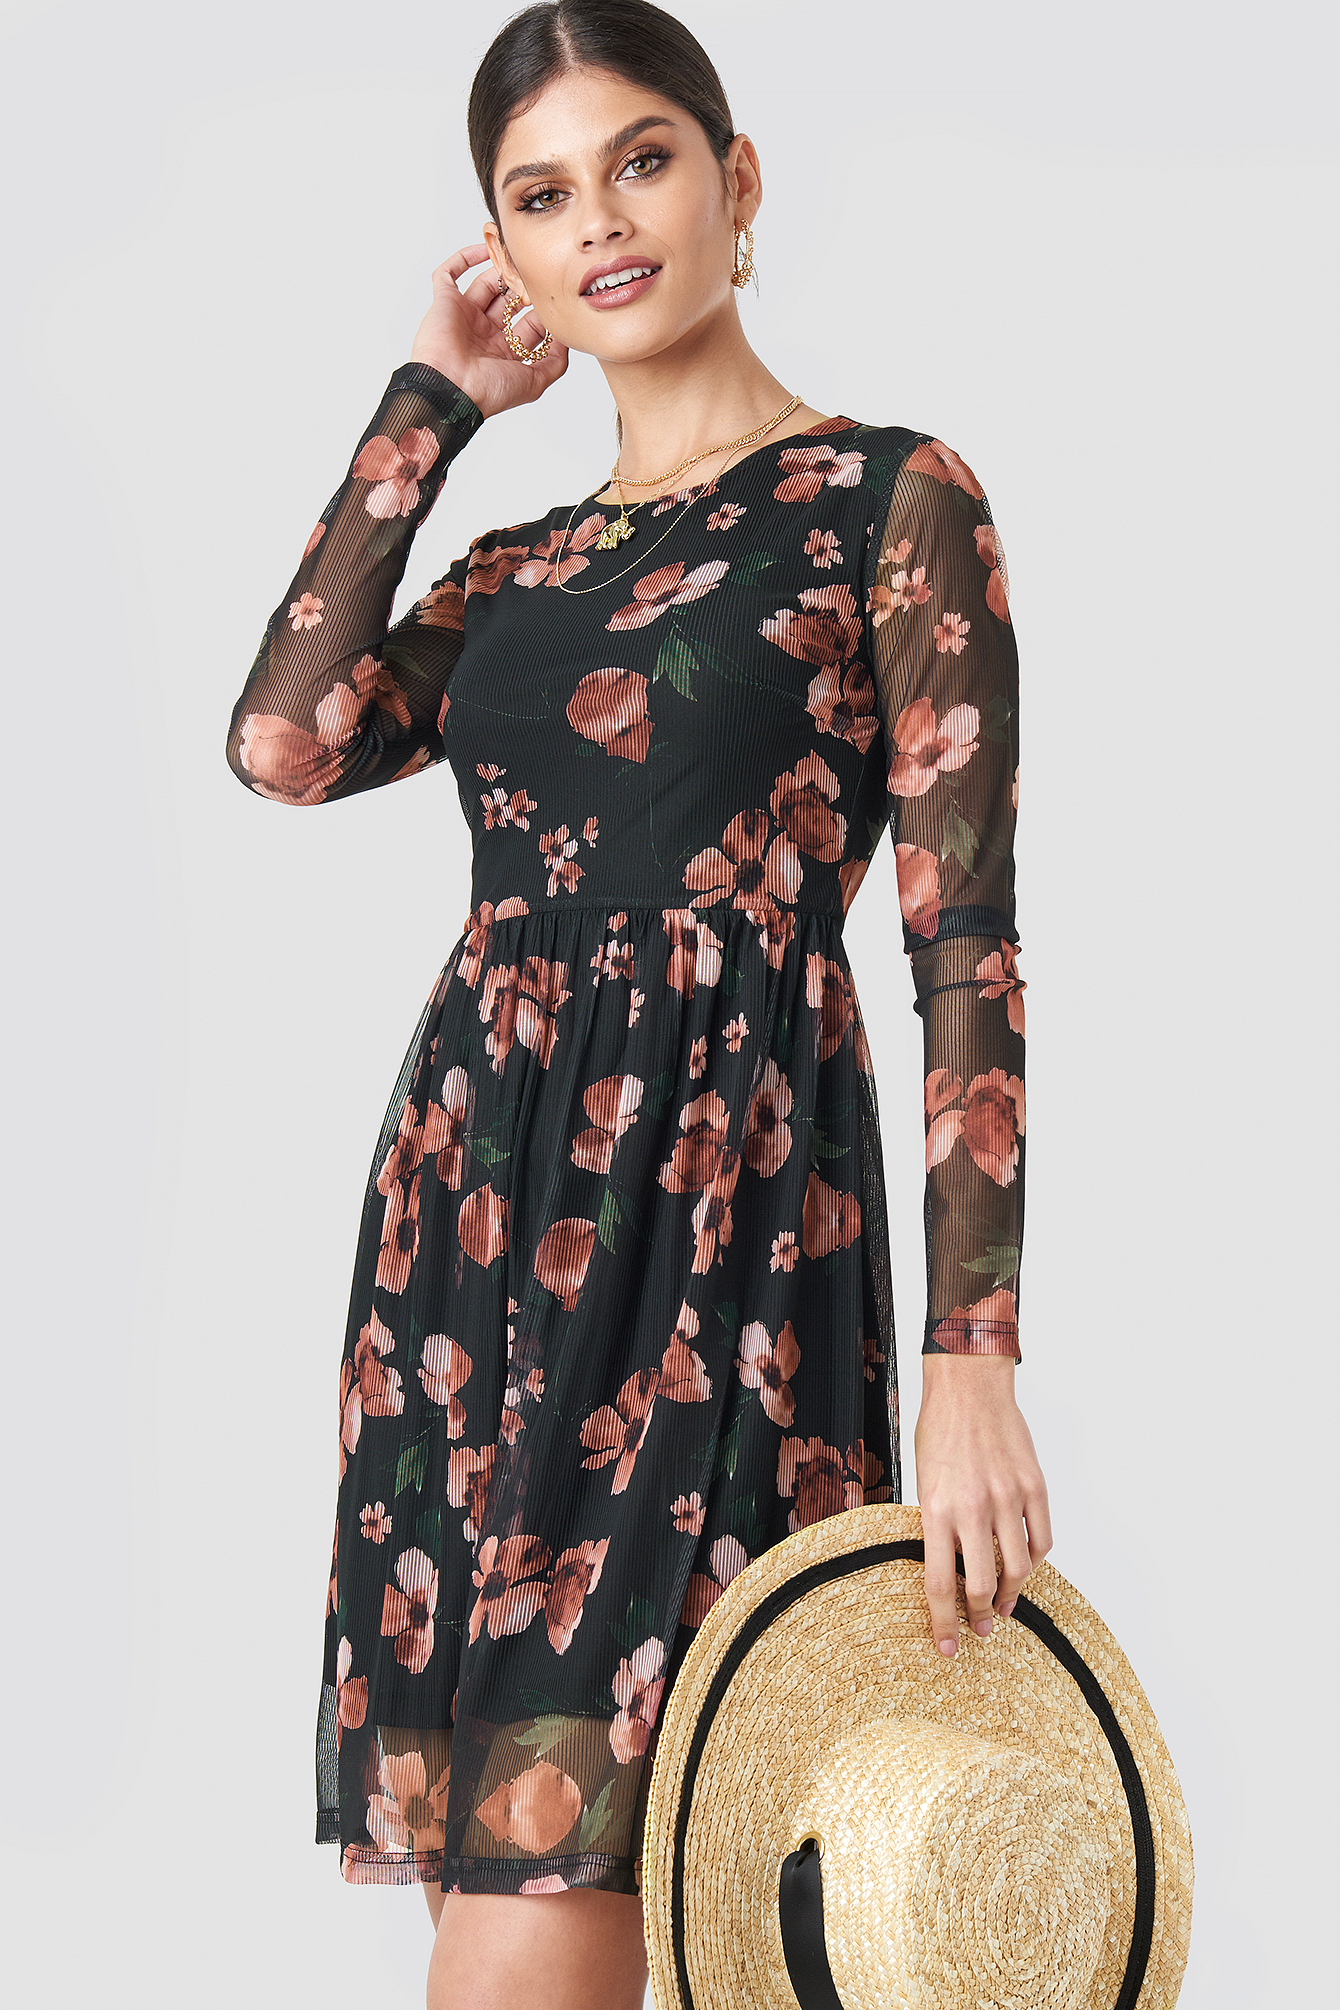 Black/Pink Flower Print Round Neck Flower Mesh Dress